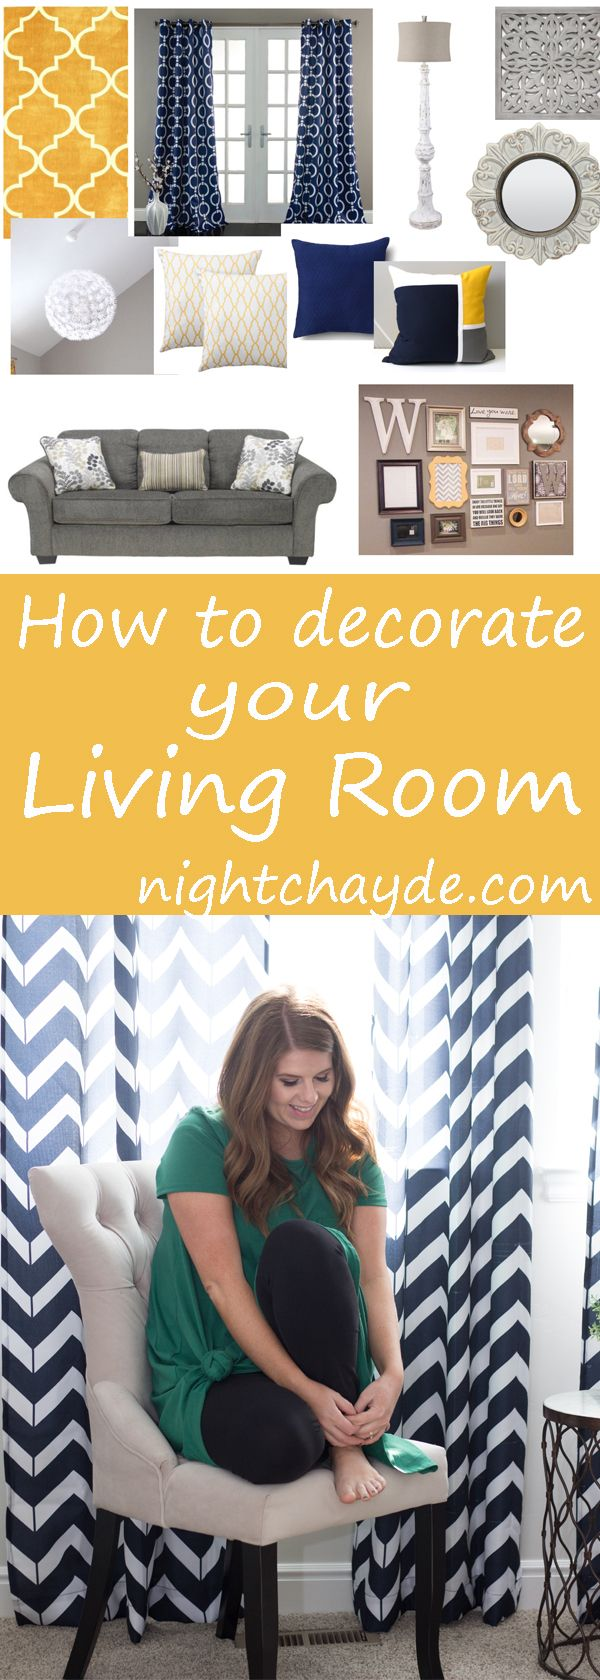 How To Creat A Mood Board For Your Living Room And Buy All Your Decor On A Budget Sta Yellow Living Room Living Room Decor On A Budget Living Room On